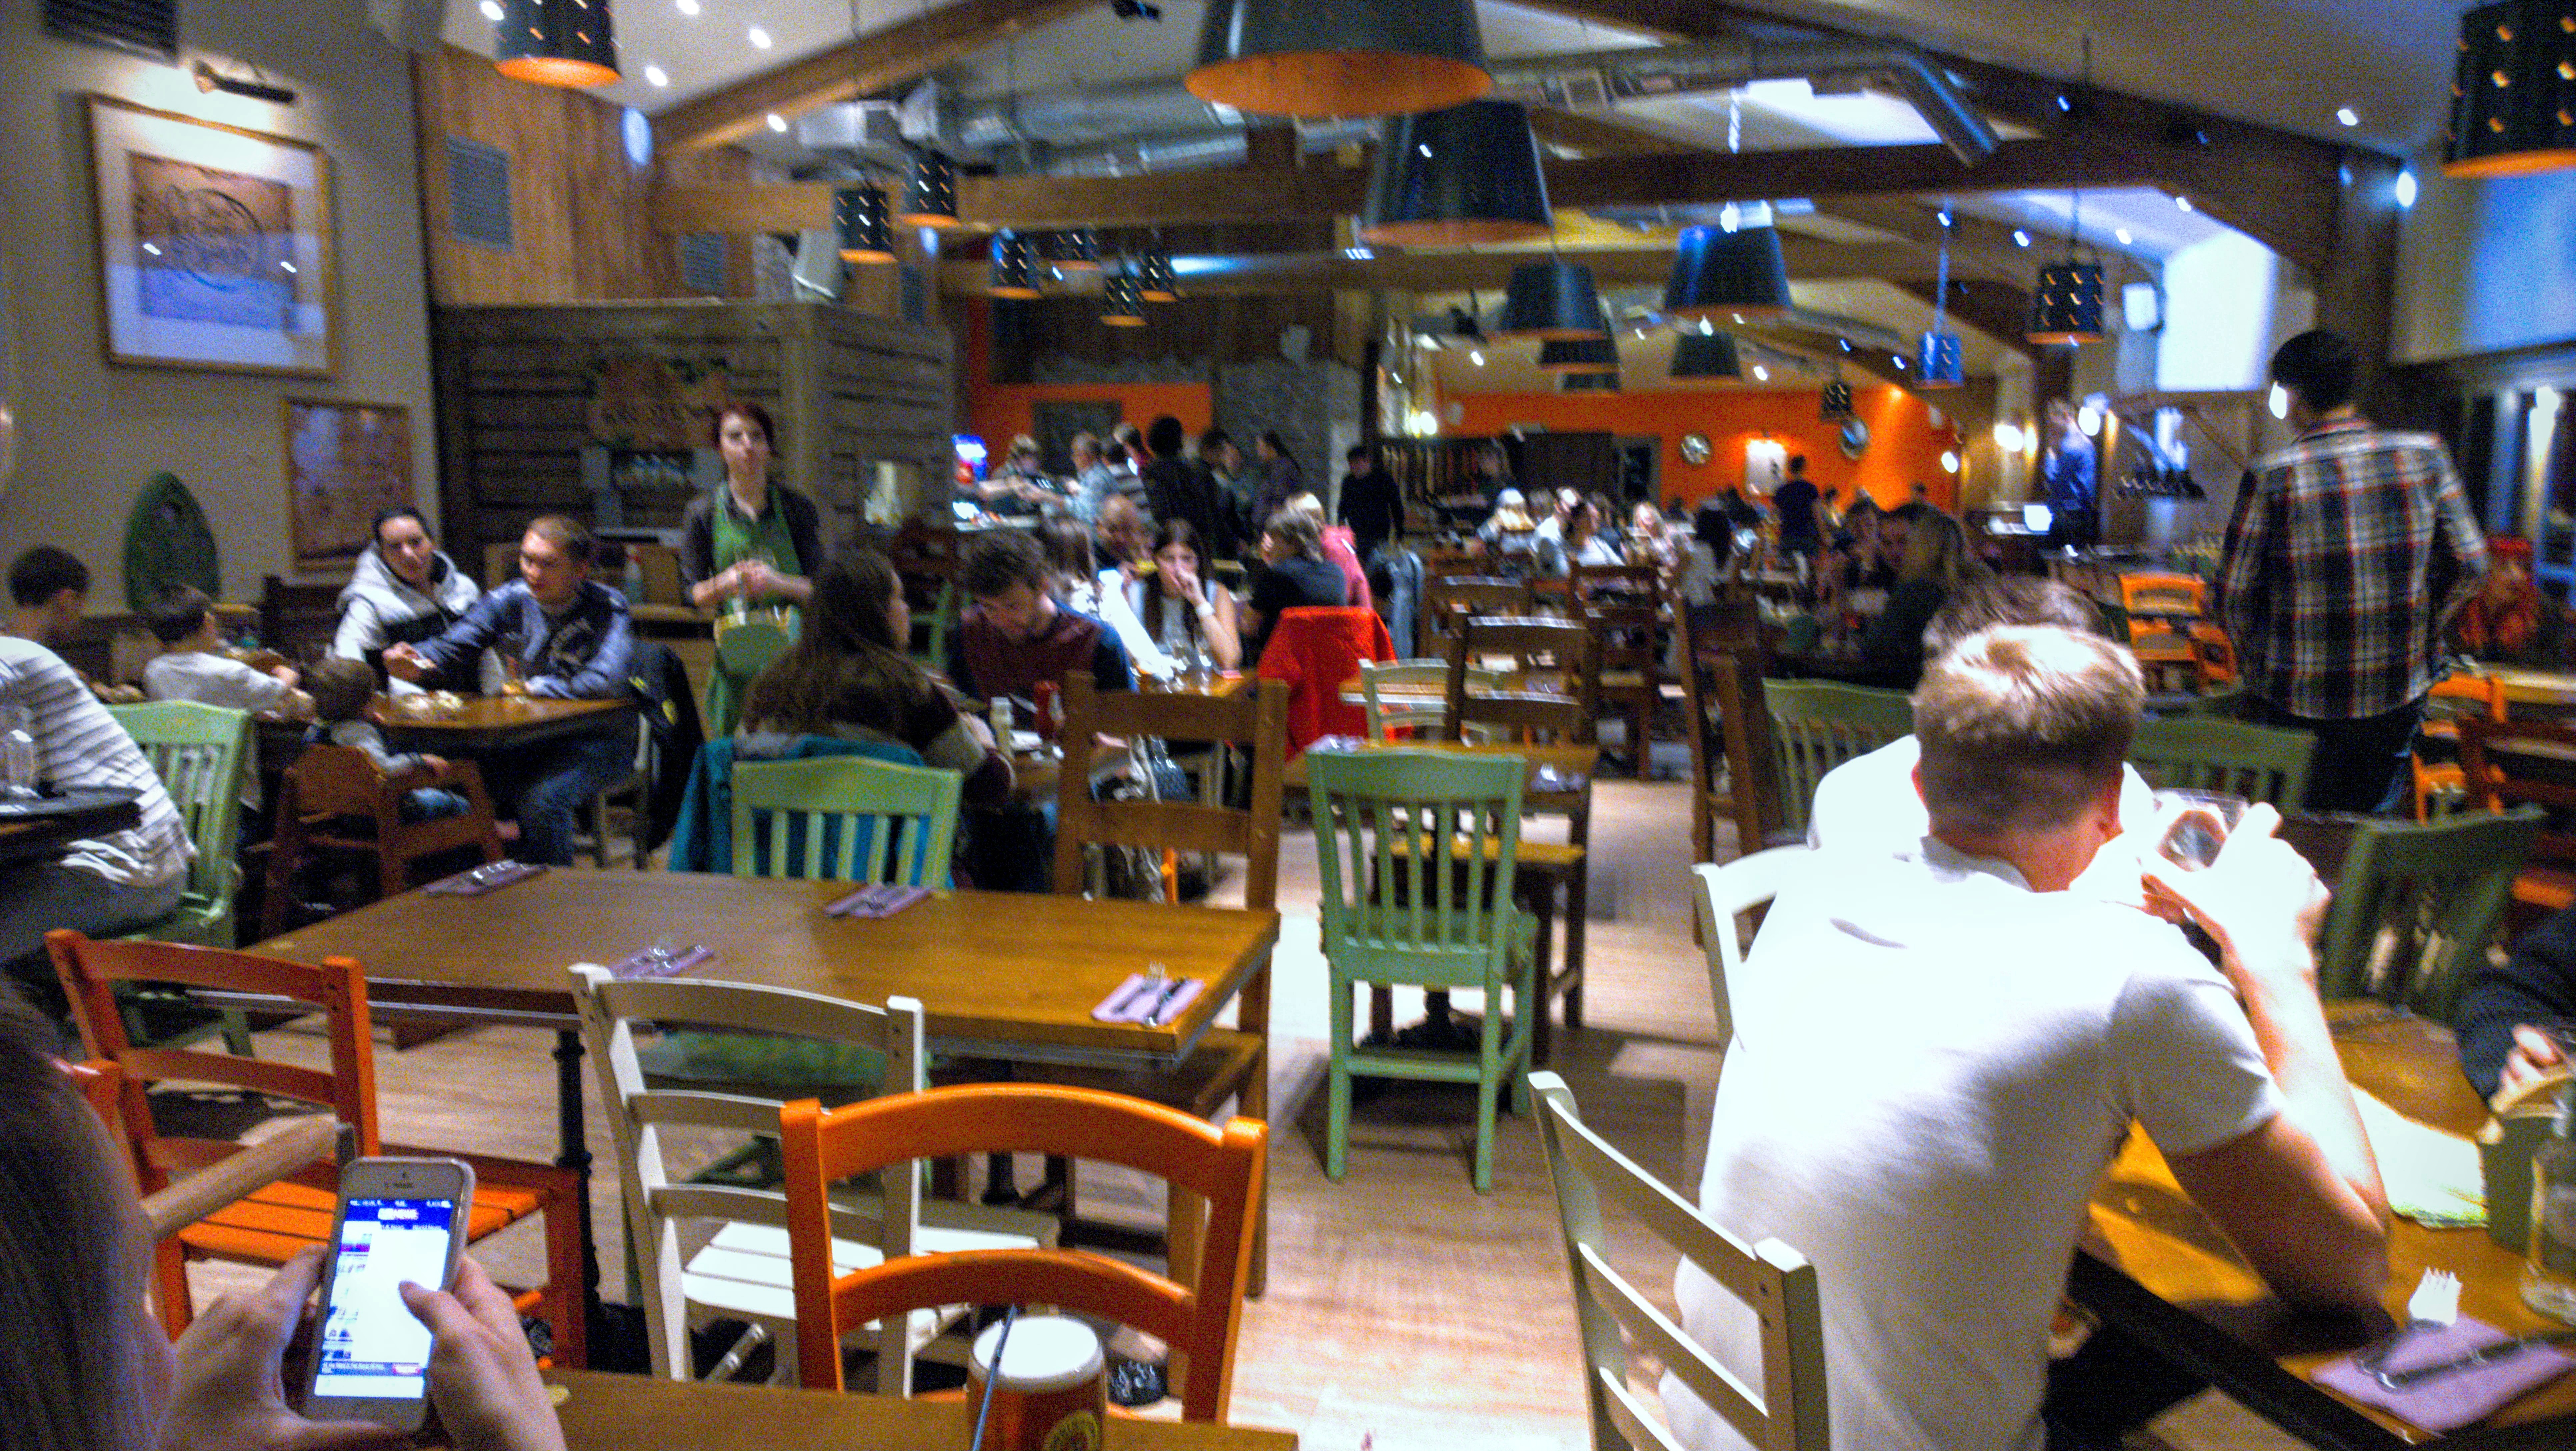 Review Enchanted Lodges And Village At Alton Towers Resort